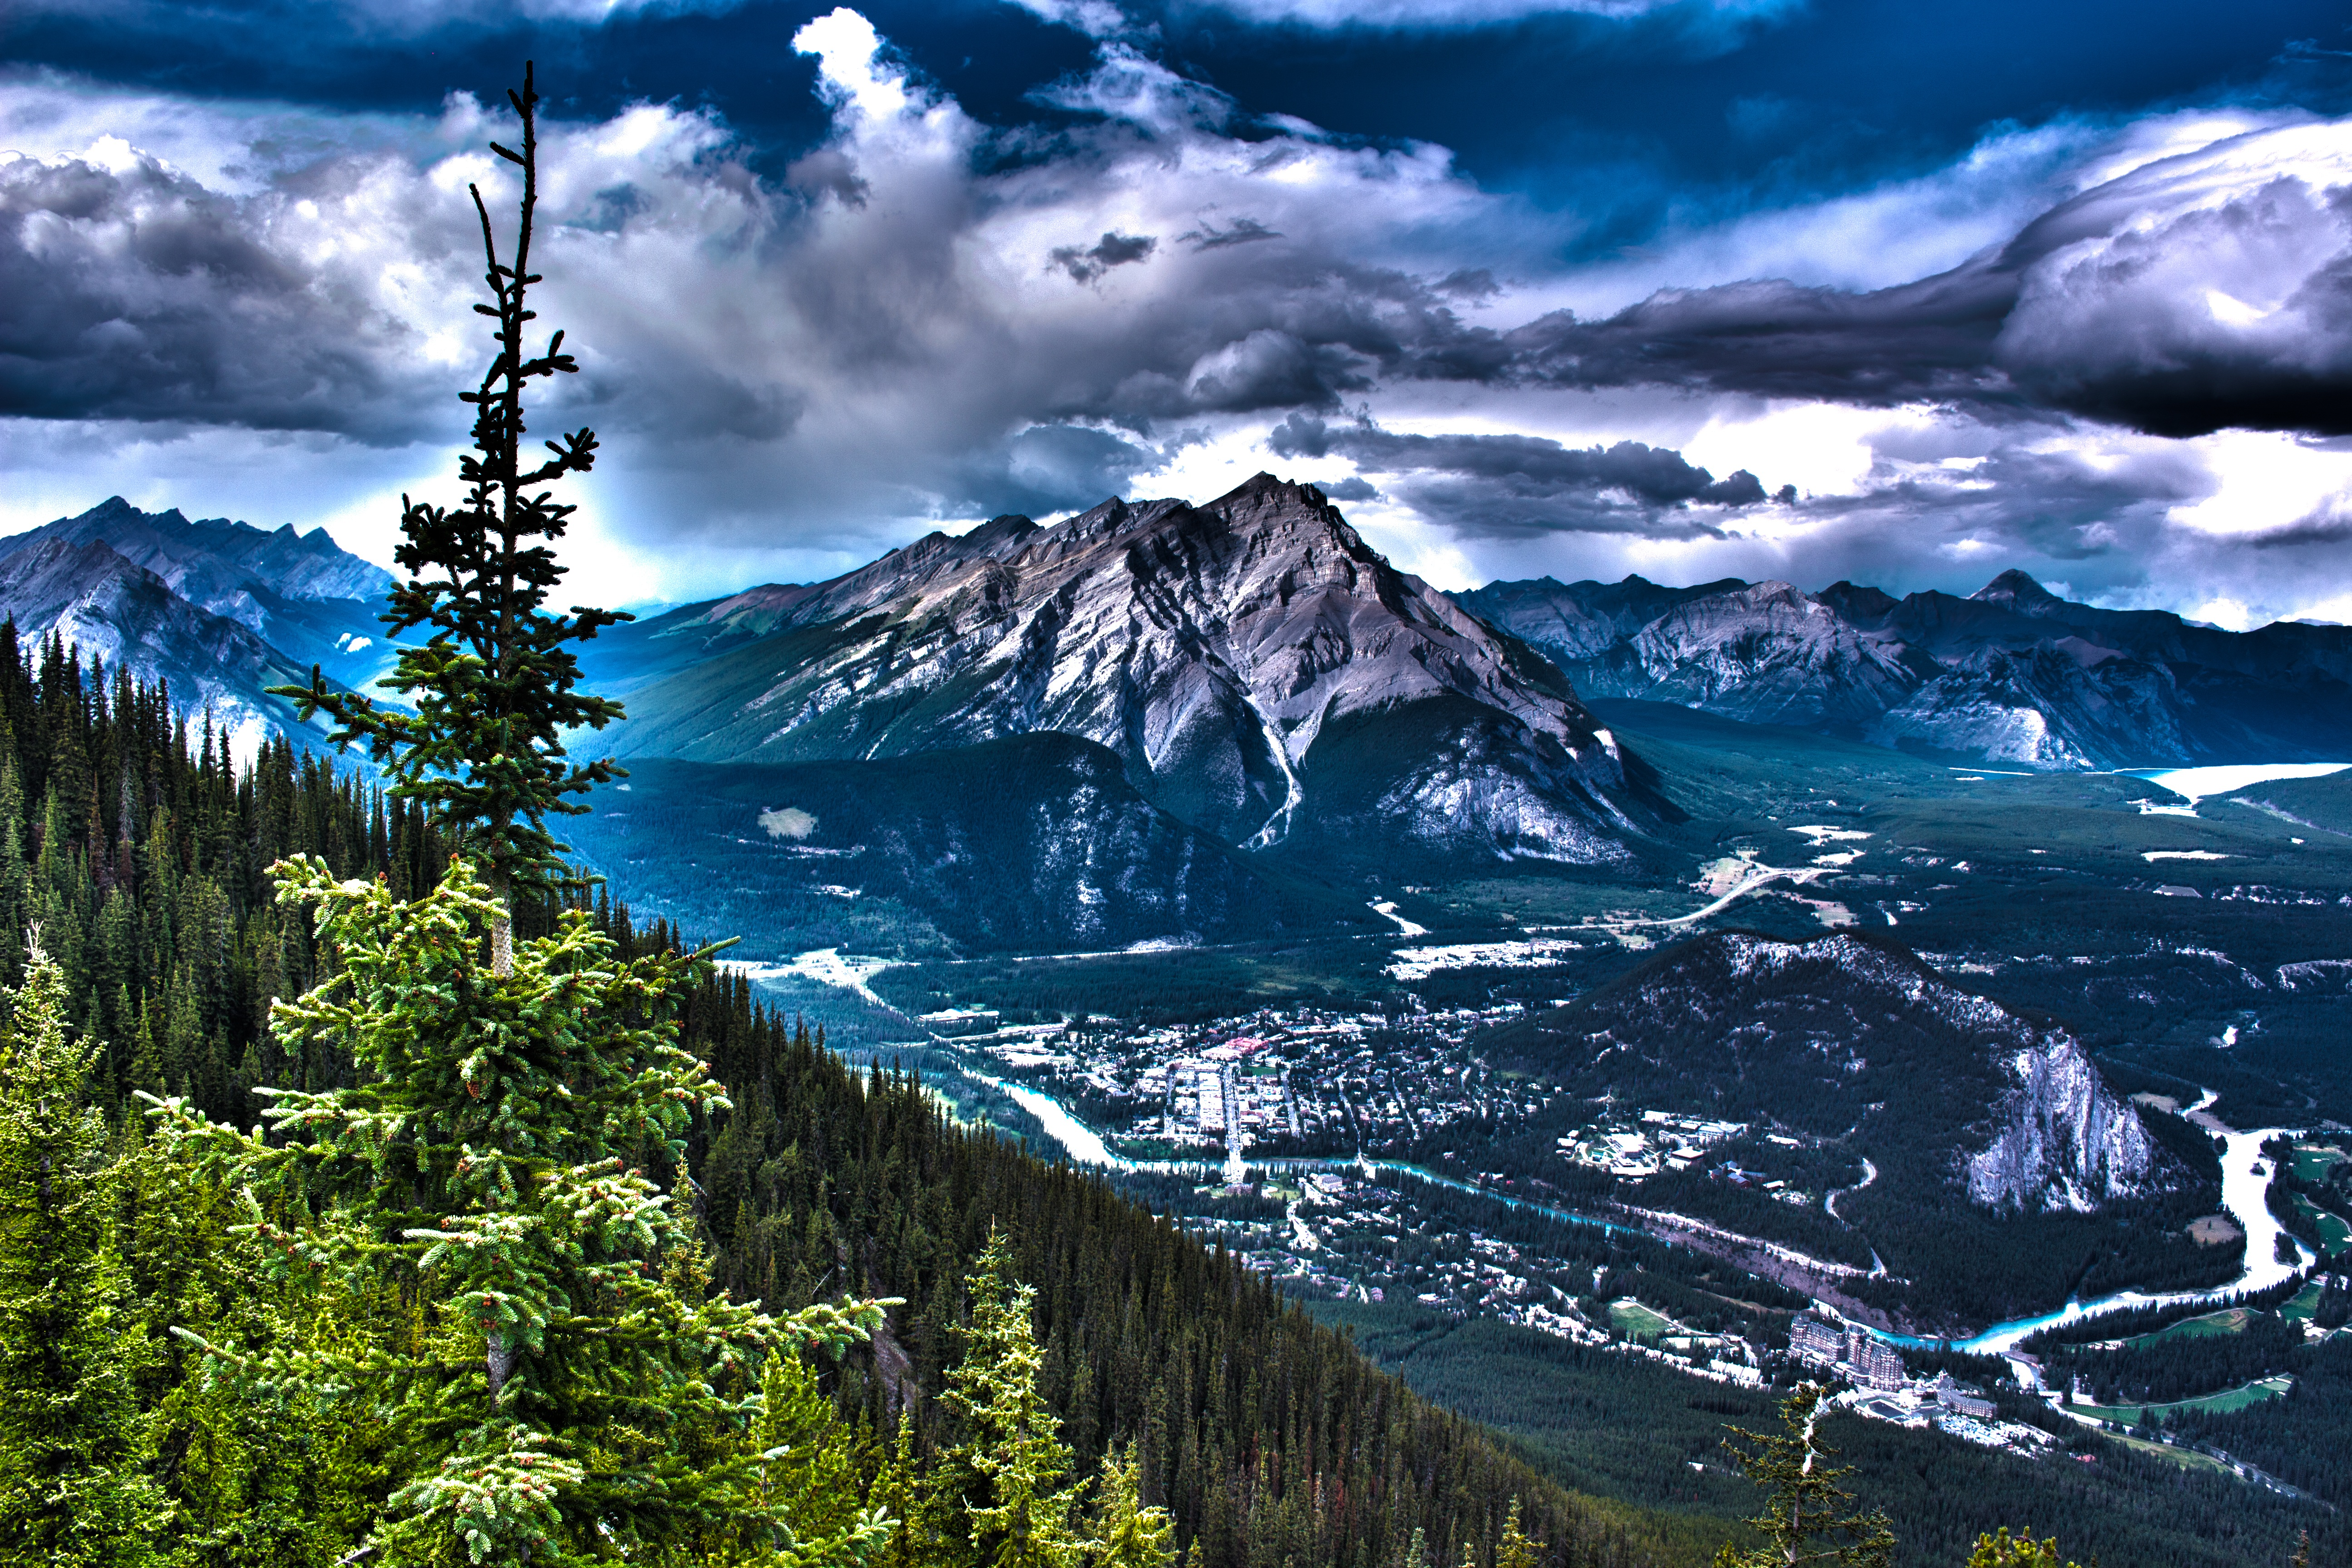 canada_mountains_rocks_hdr_115094_5181x3455